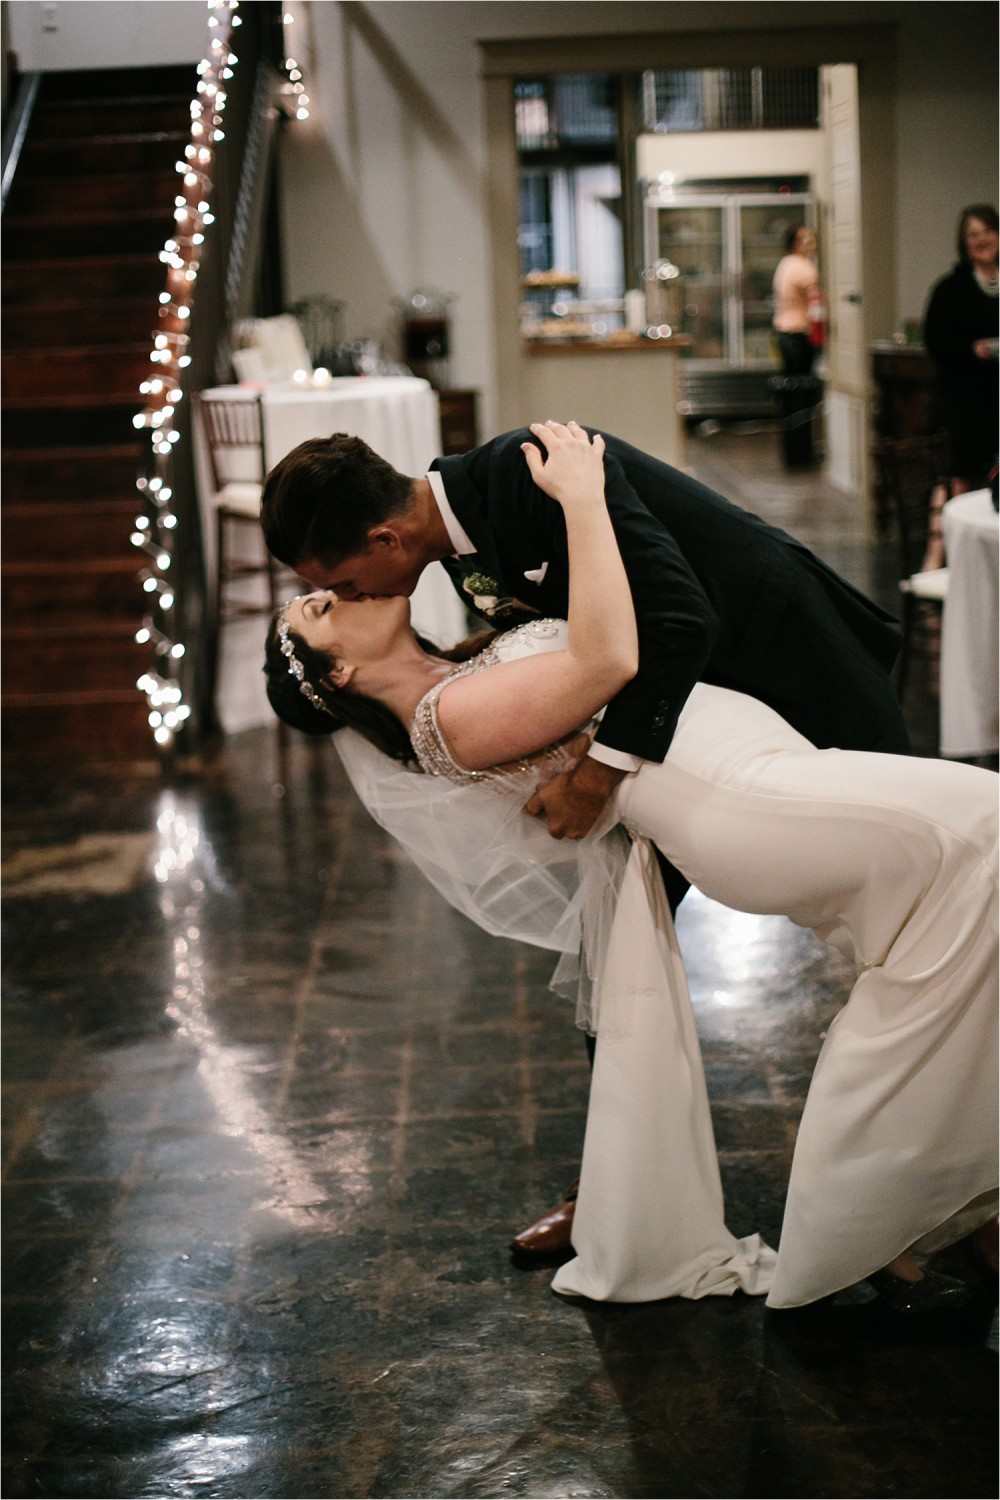 whittney-drew-__-an-intimate-wine-and-navy-wedding-in-an-industrial-venue-at-loft-123-in-paris-tx-by-north-texas-wedding-photographer-rachel-meagan-photography-_-103